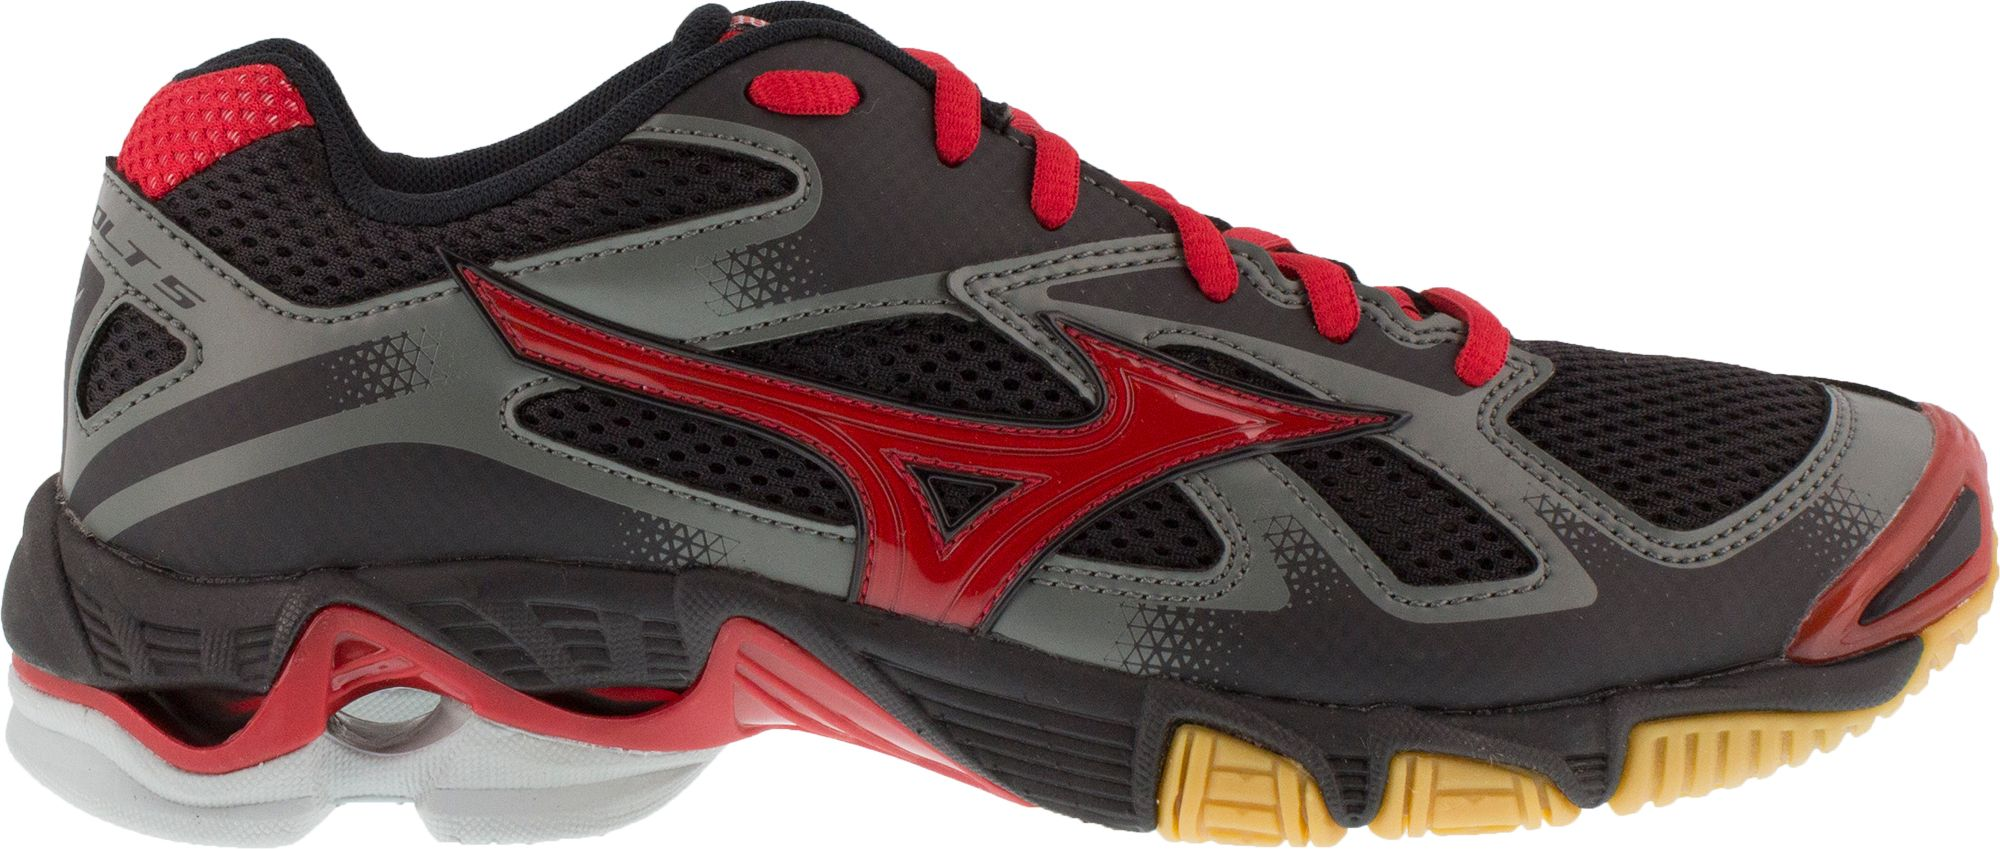 Mizuno Women's Wave Bolt 5 Volleyball Shoes| DICK'S Sporting Goods